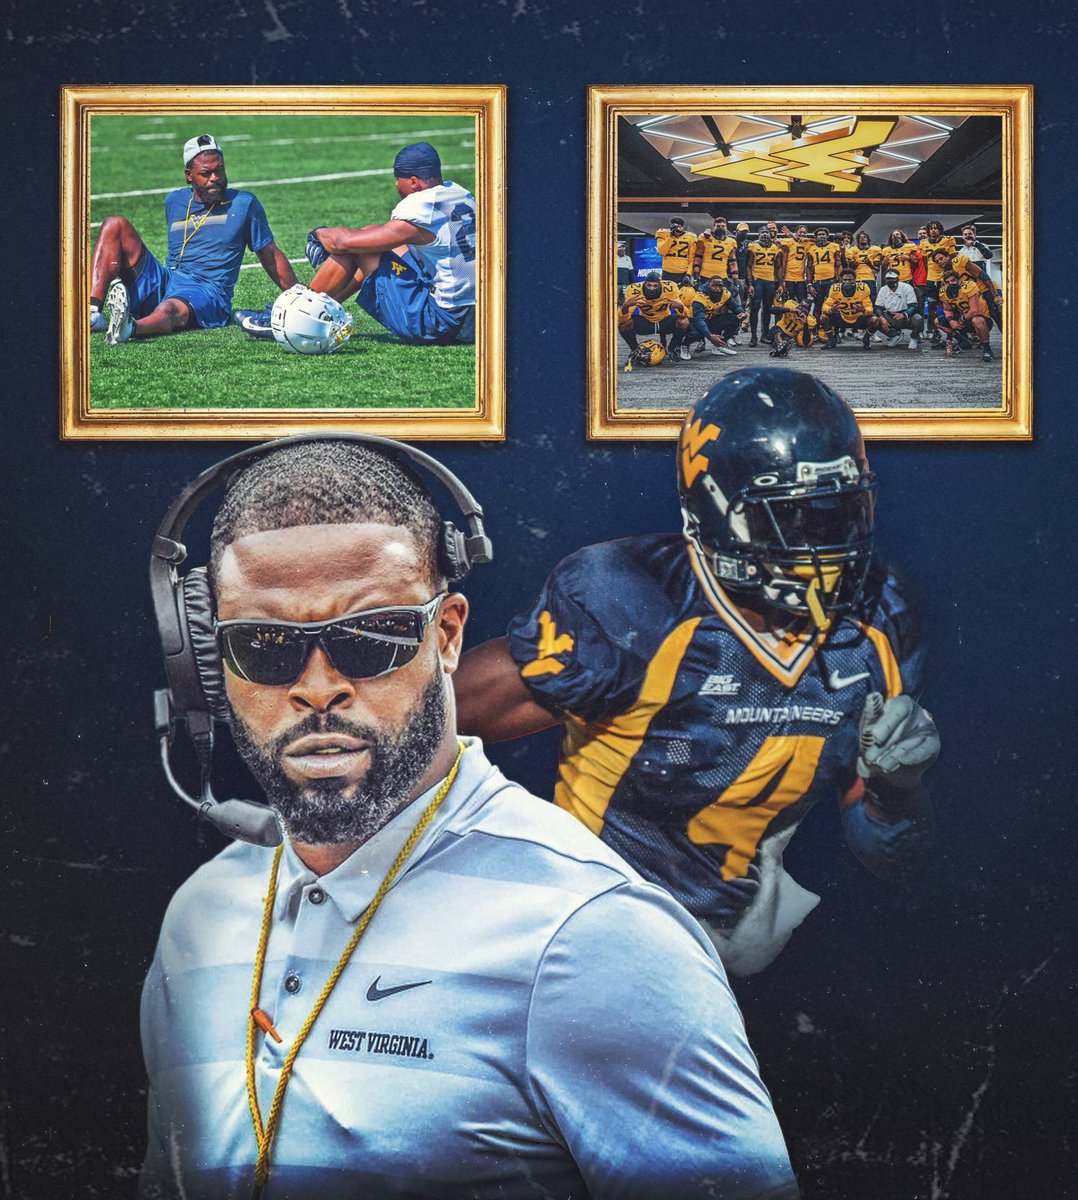 Forever thankful to @NealBrown_WVU  and @WVUfootball for the opportunity to come on home! The young men I coached, the fans, the community... it'll all be missed. I want Mountaineer nation to know... I GAVE IT MY ALL AS A PLAYER AND COACH💙💛 #Fourlife